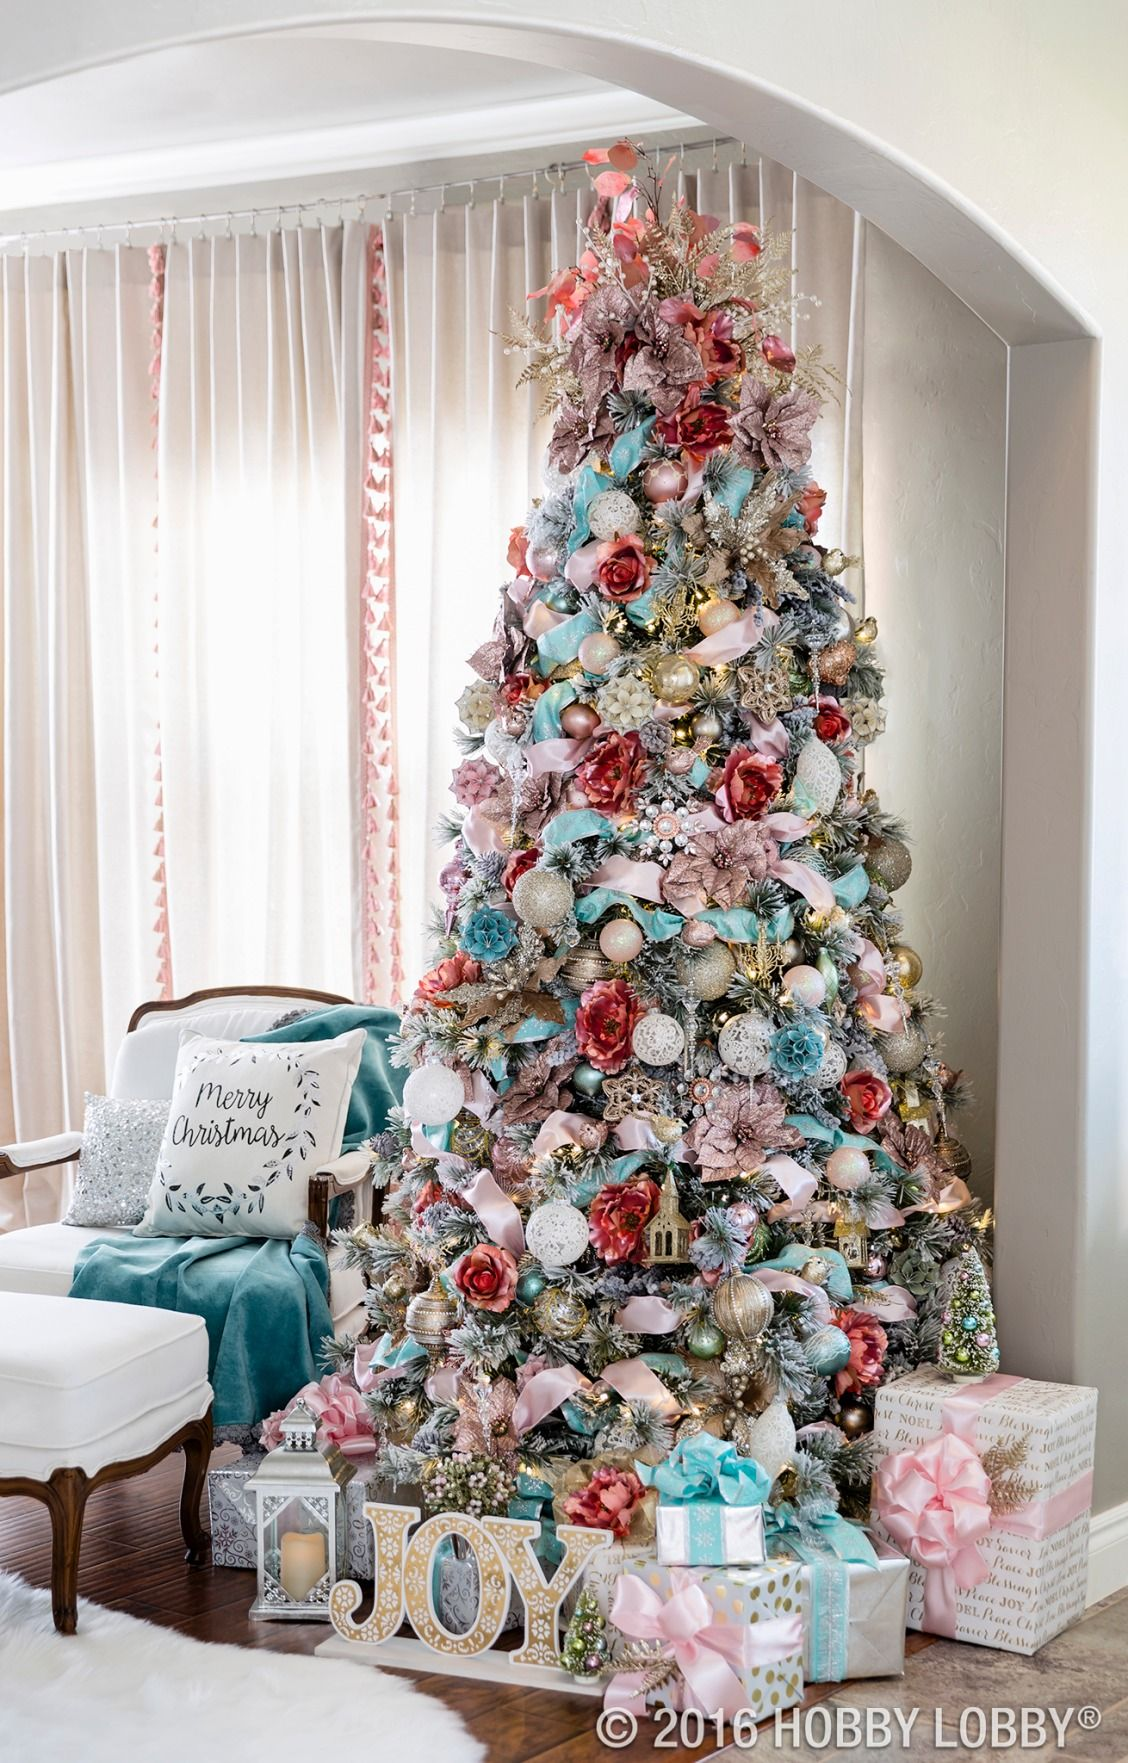 Are you already dreaming of Christmas? Set the scene for a